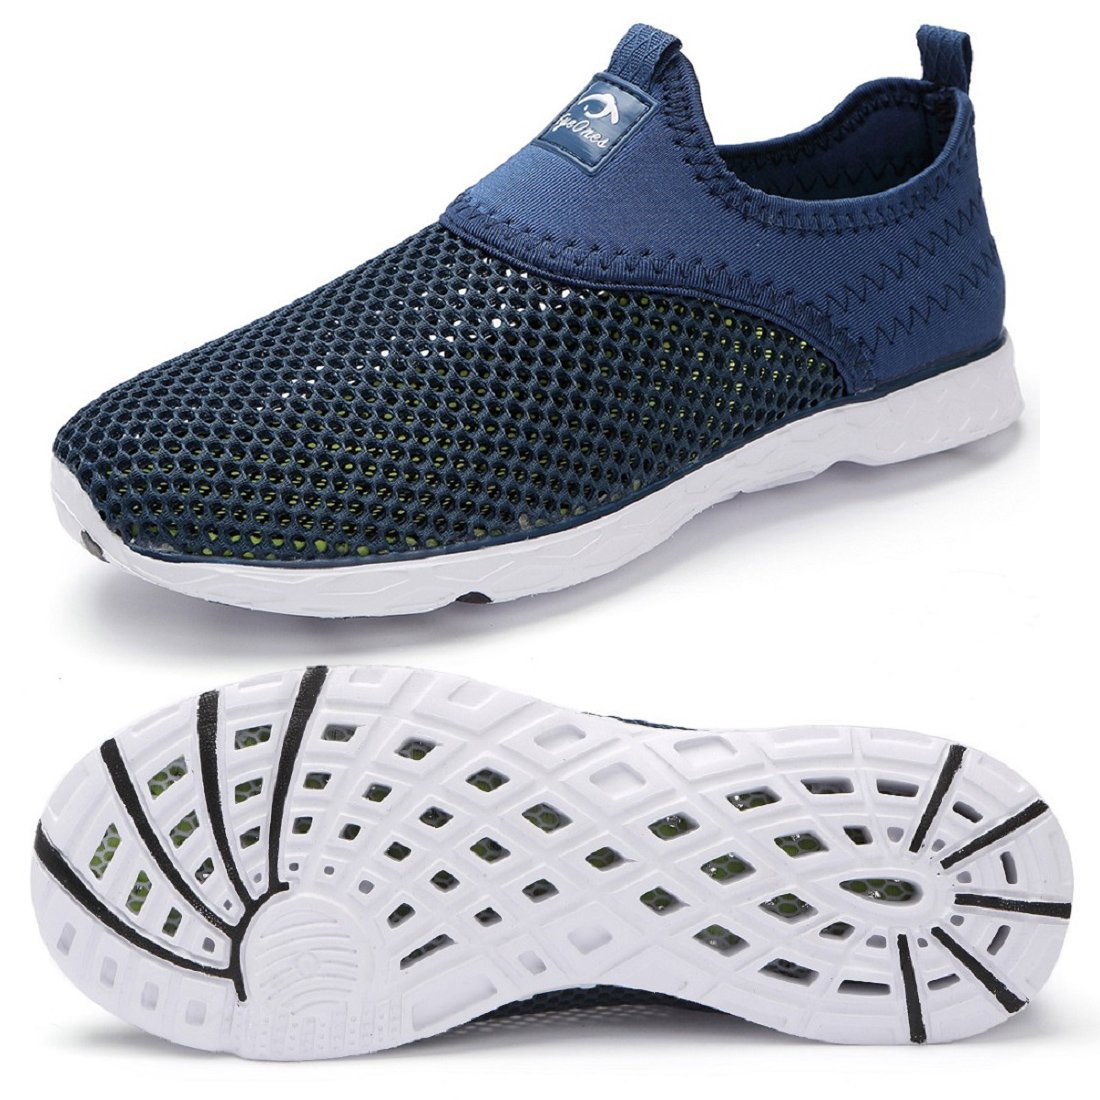 eyeones Men's Quick Drying Fashion Water Shoes B079G5W87Z 41 EU = Men 8 D(M) US / Women 9 B(M) US|Dark/Blue-057cu